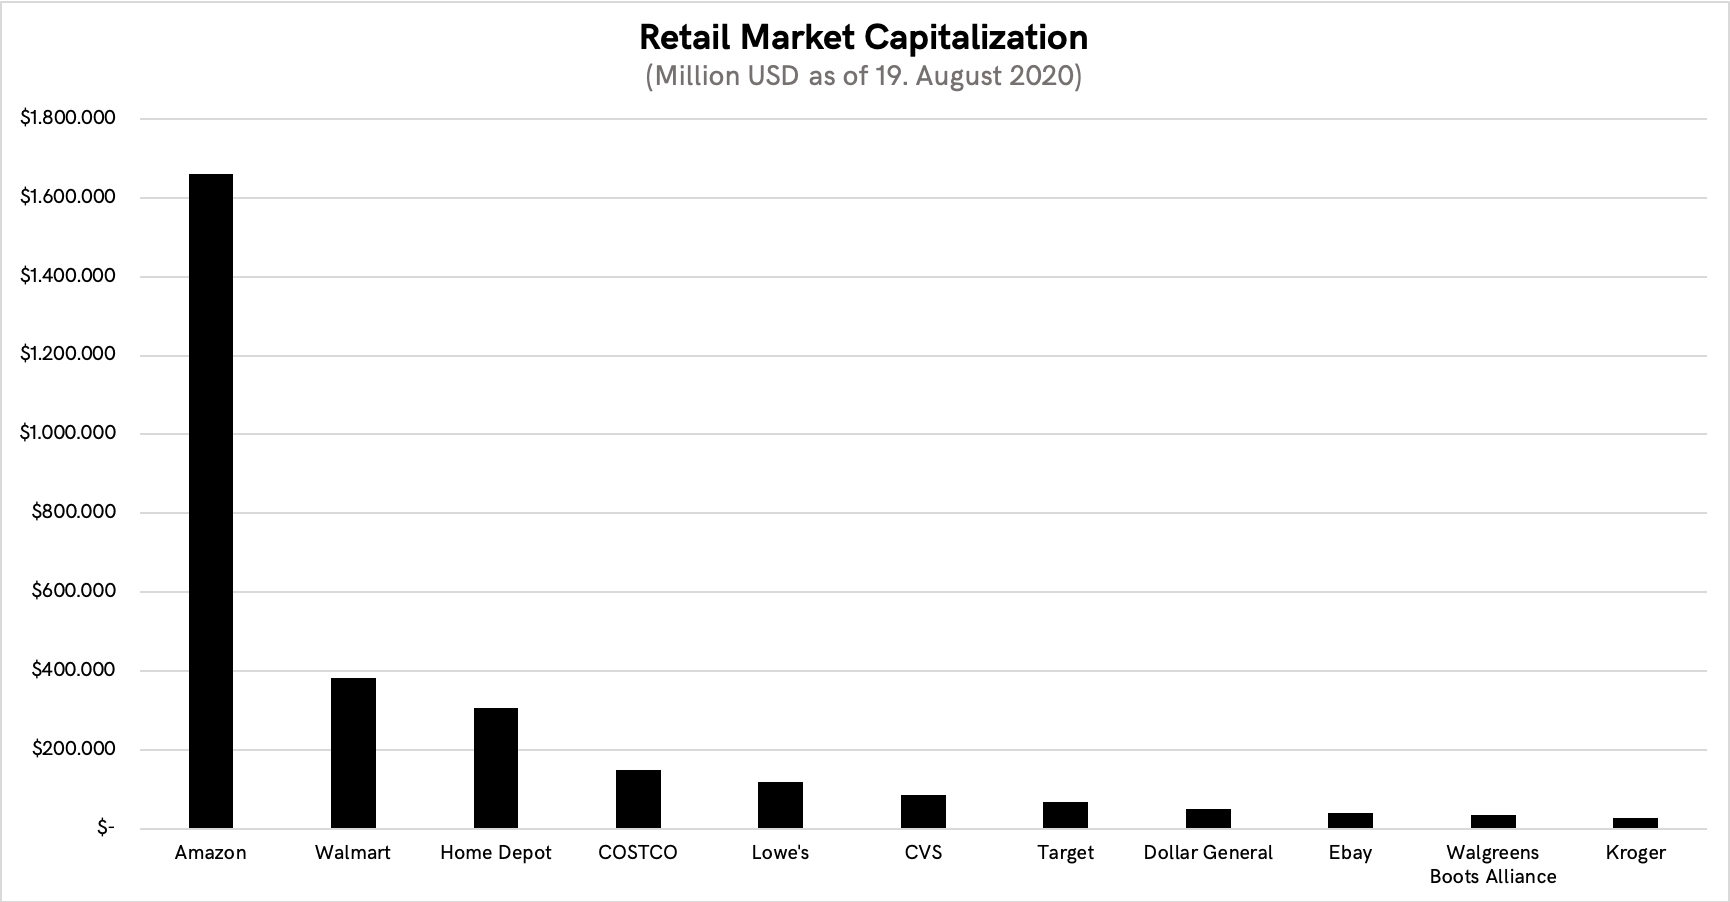 Comparison of market capitalization of public companies in the retail space